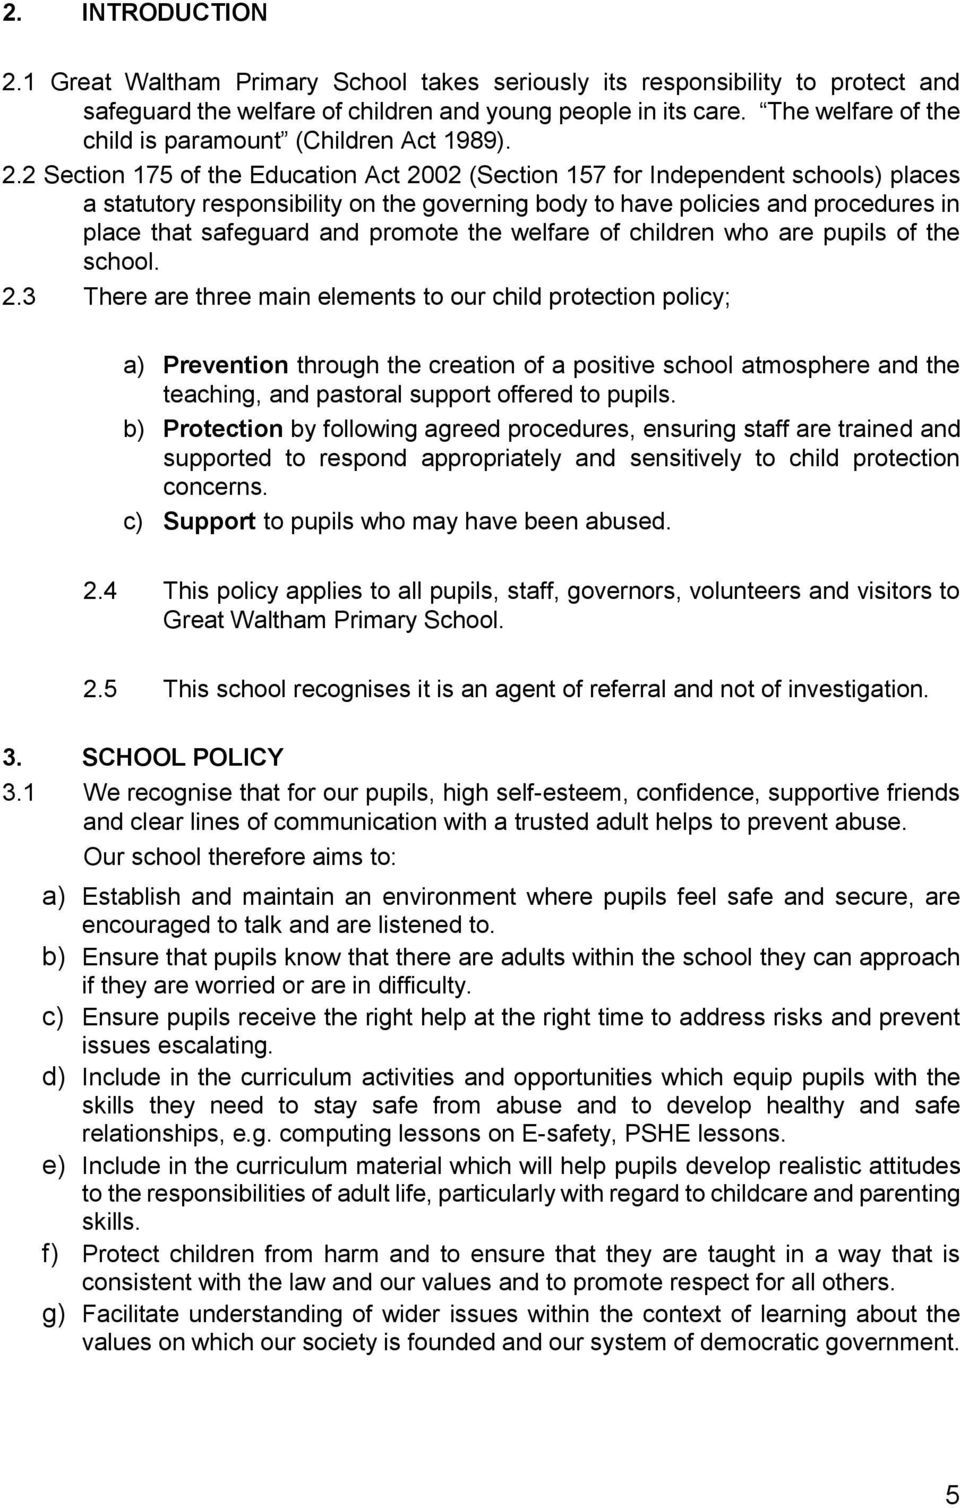 2 Section 175 of the Education Act 2002 (Section 157 for Independent schools) places a statutory responsibility on the governing body to have policies and procedures in place that safeguard and